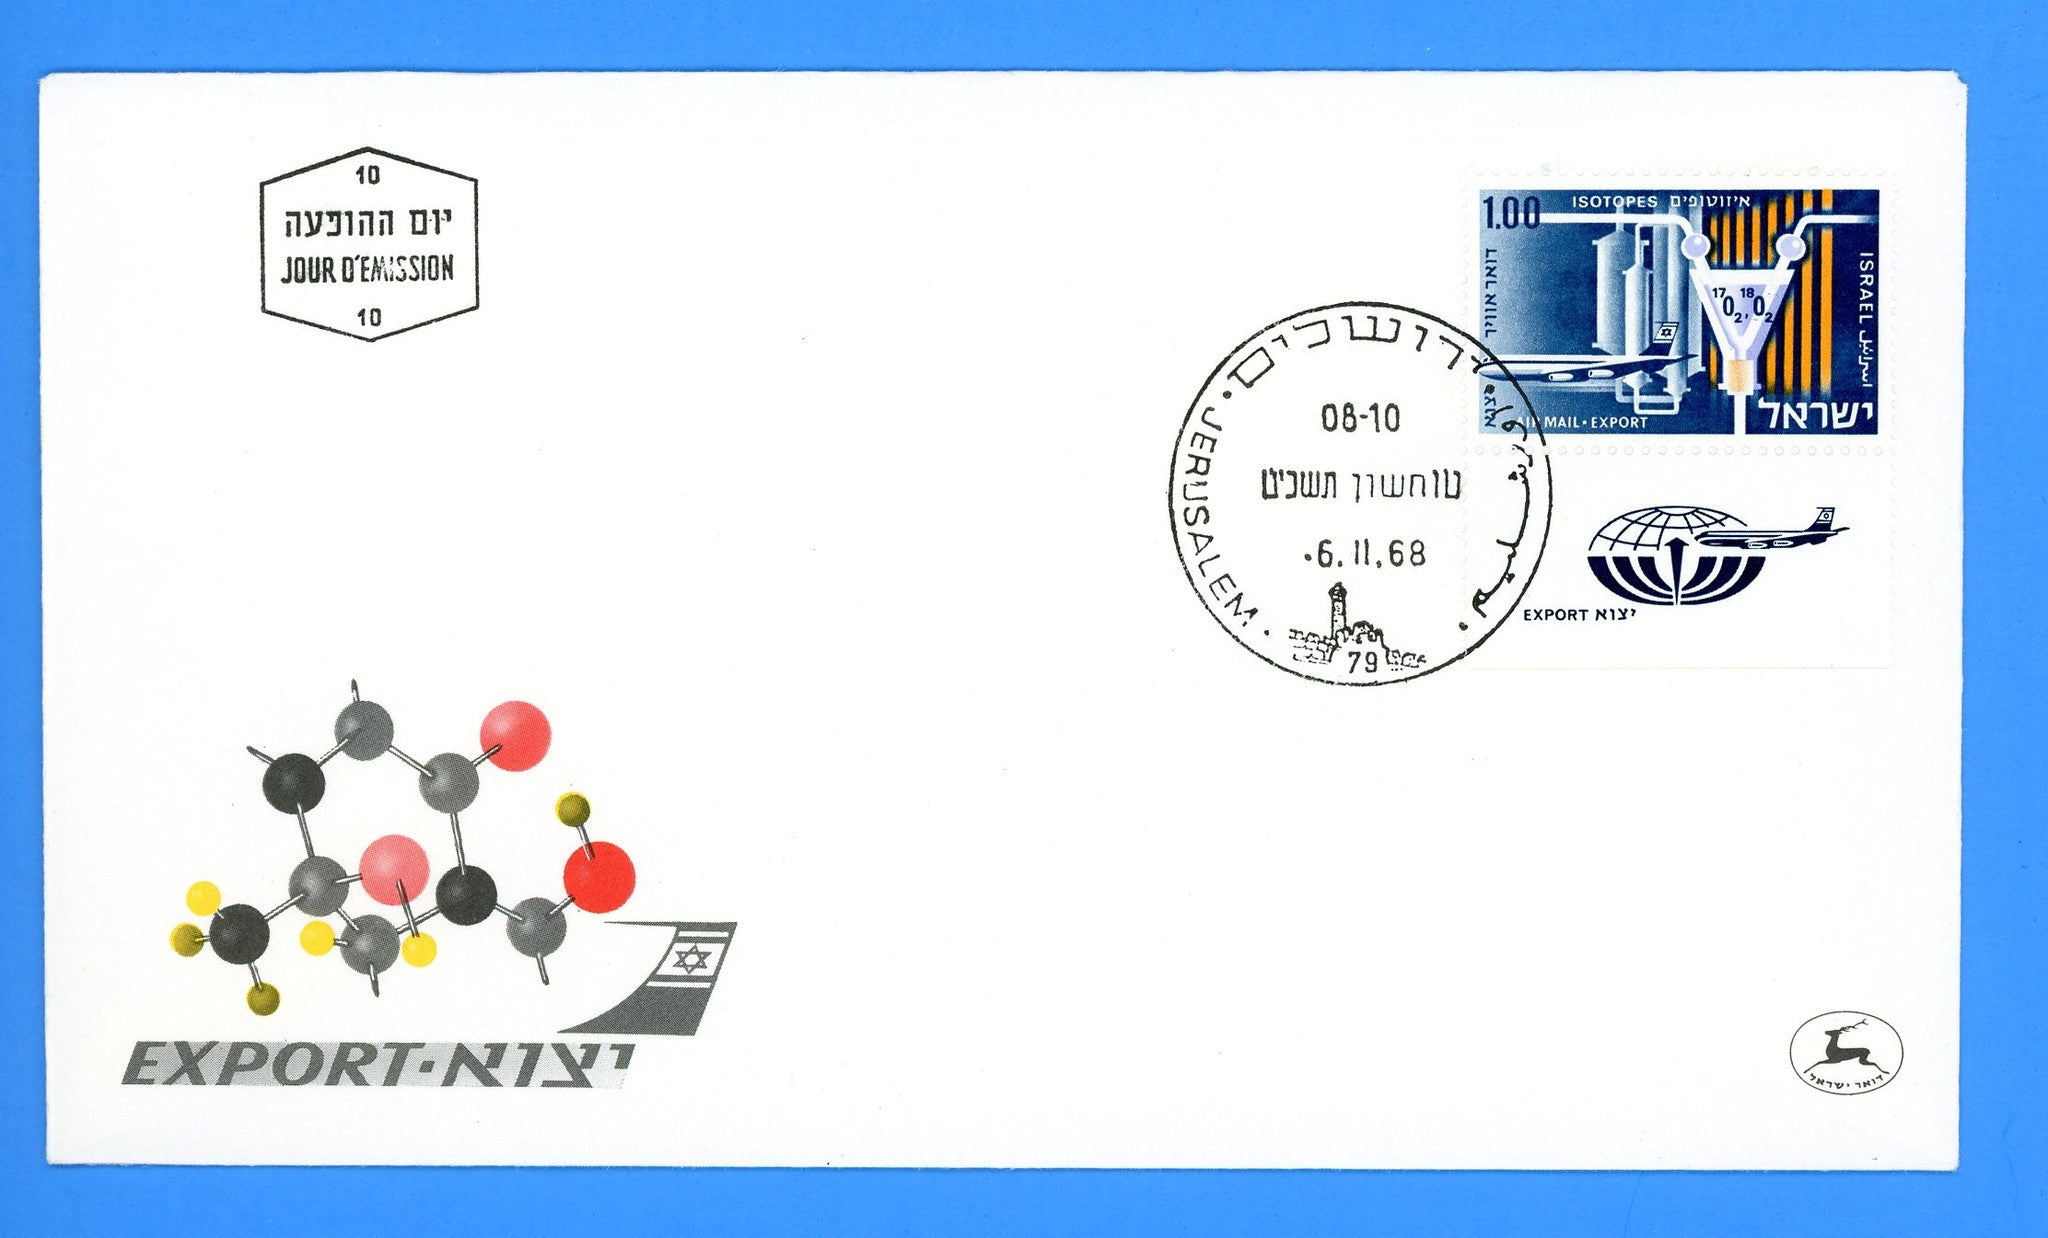 Israel - Scott C45 1.00 Isotopes, Airmail-Export First Day Cover